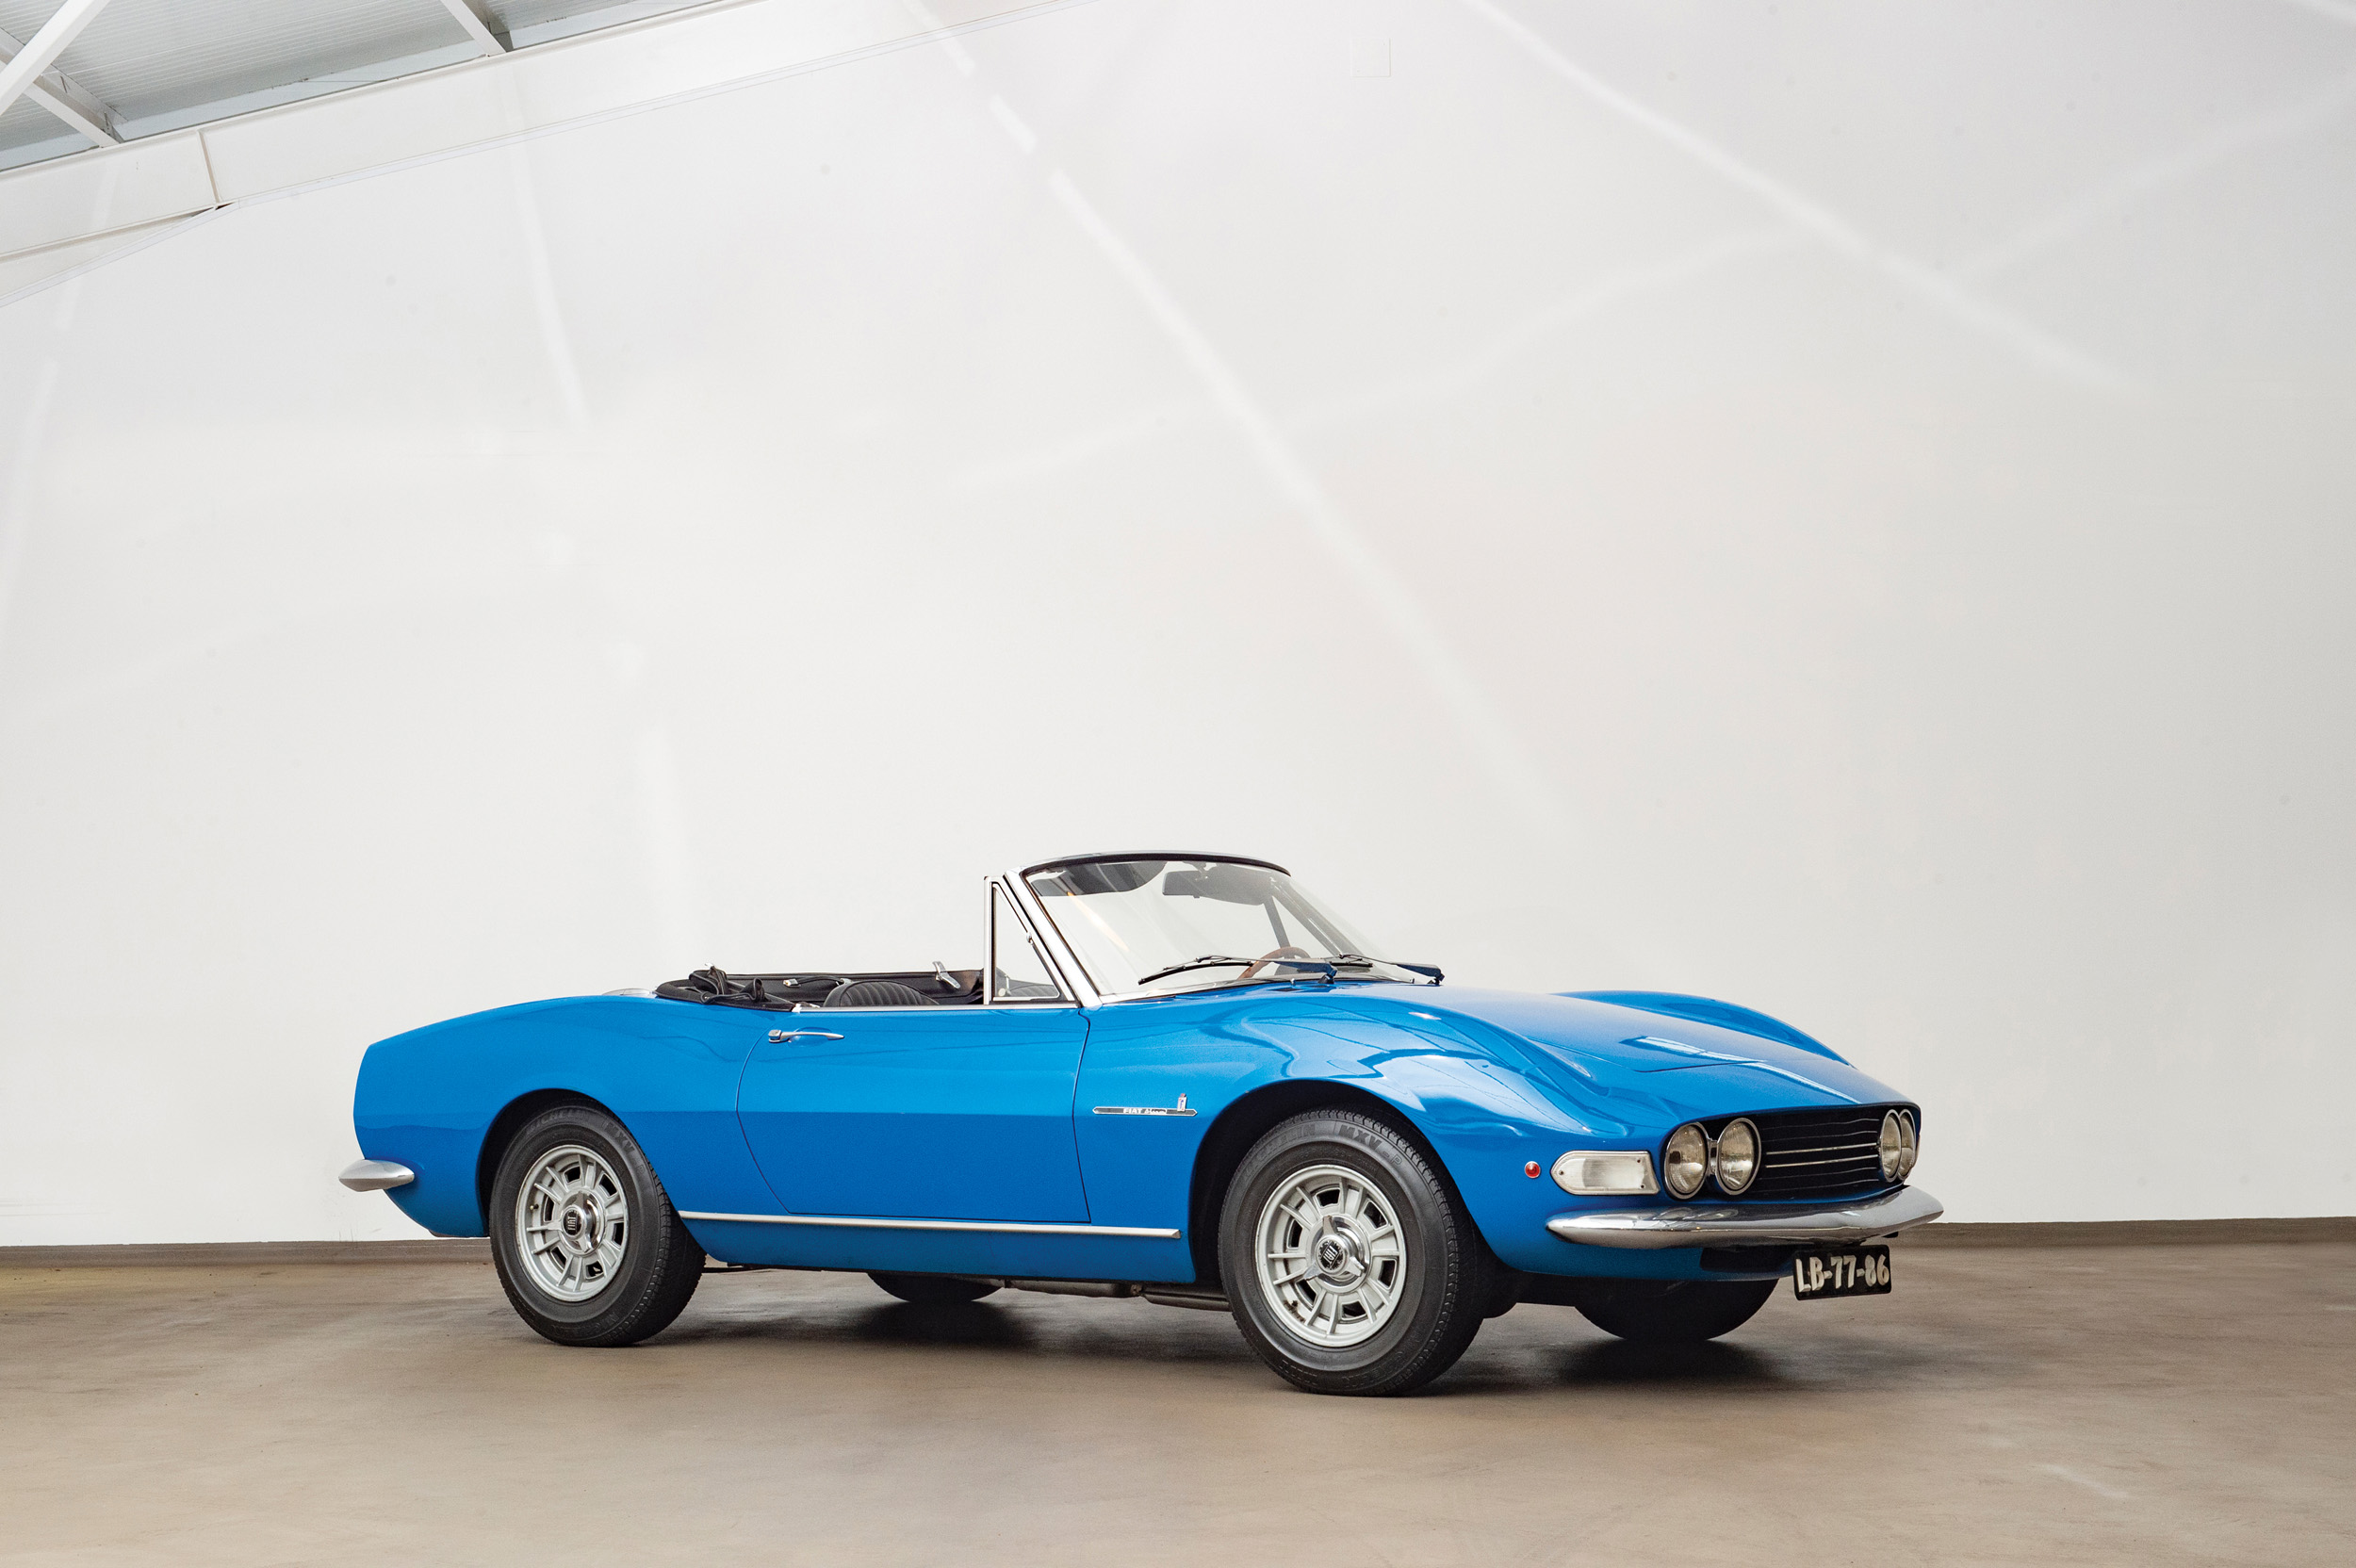 1967 Fiat Spider by Pininfarina (Credit- Tom Wood ©2019 Courtesy of RM Sotheby's) - Portuguese Sale